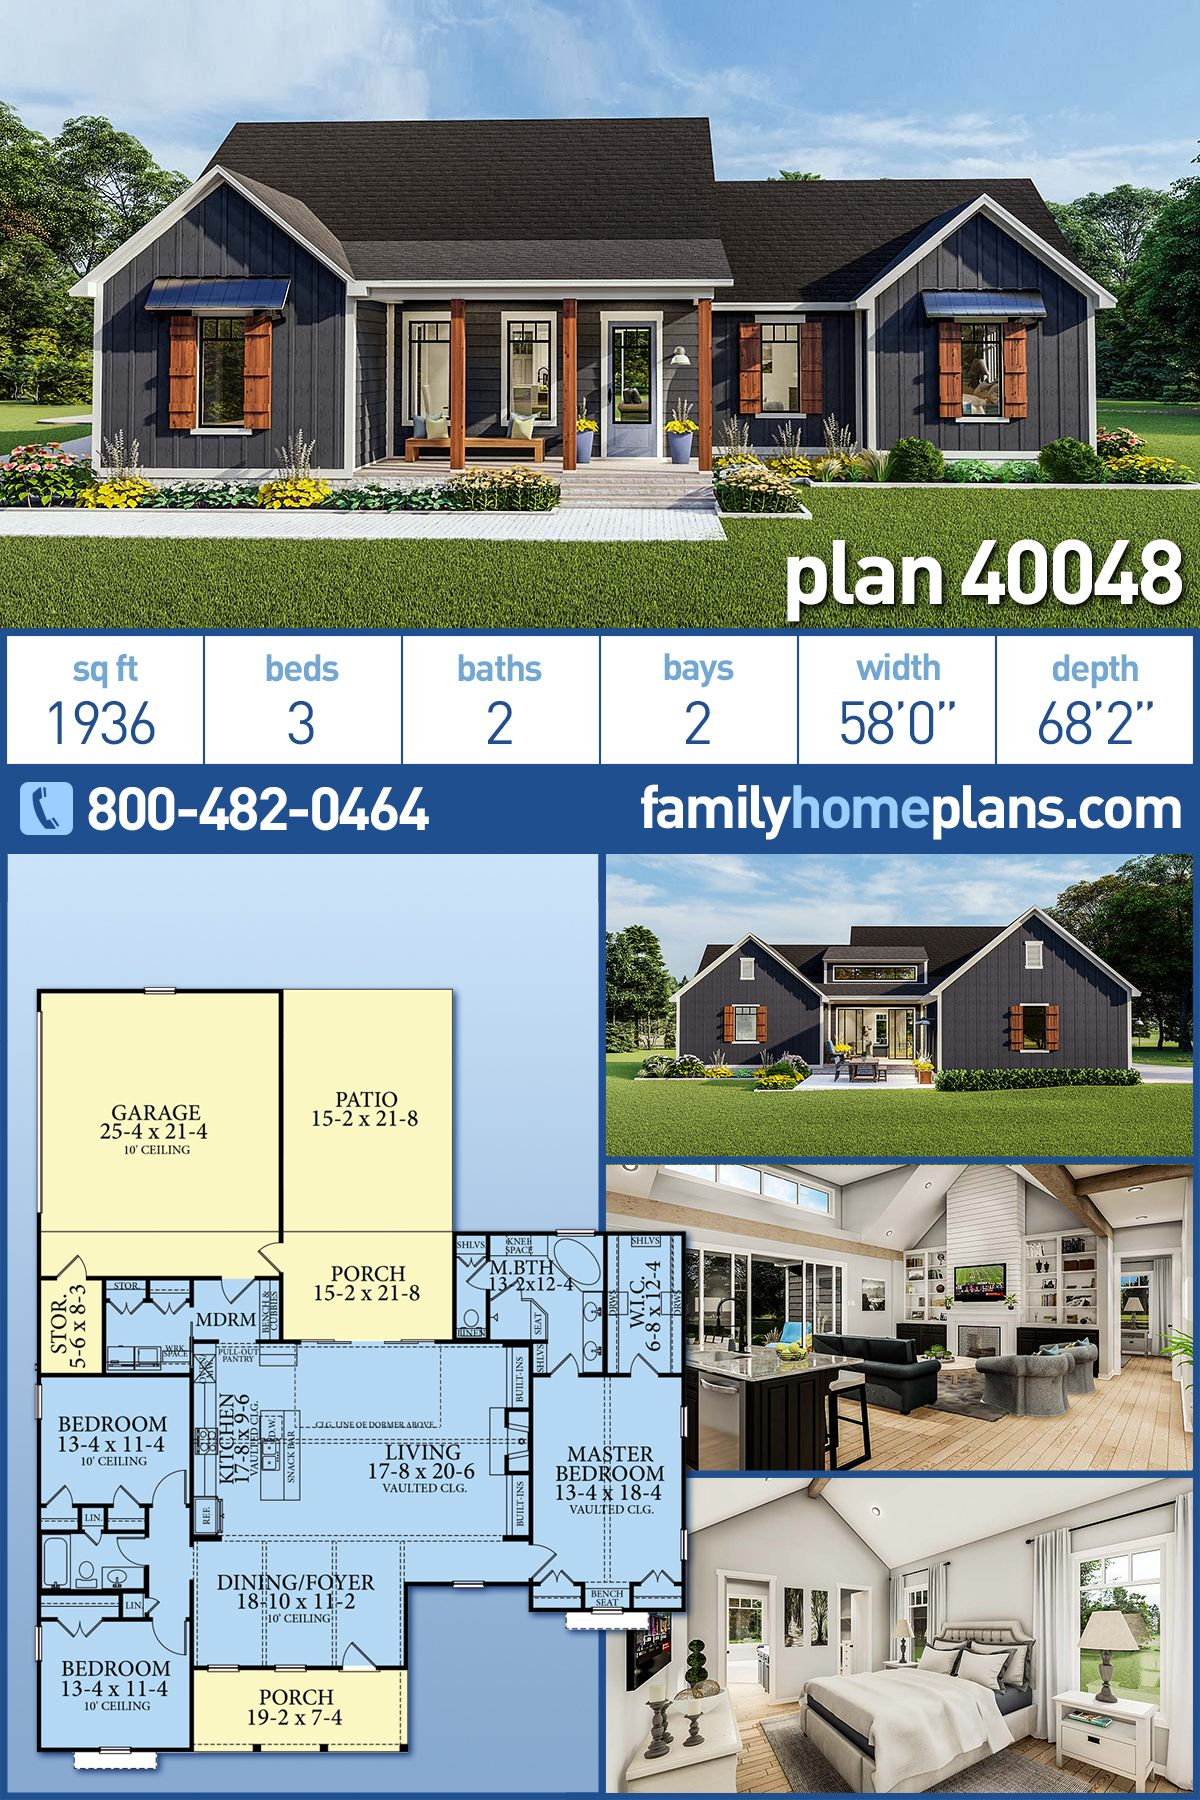 Traditional Style House Plan 40048 With 3 Bed 2 Bath 2 Car